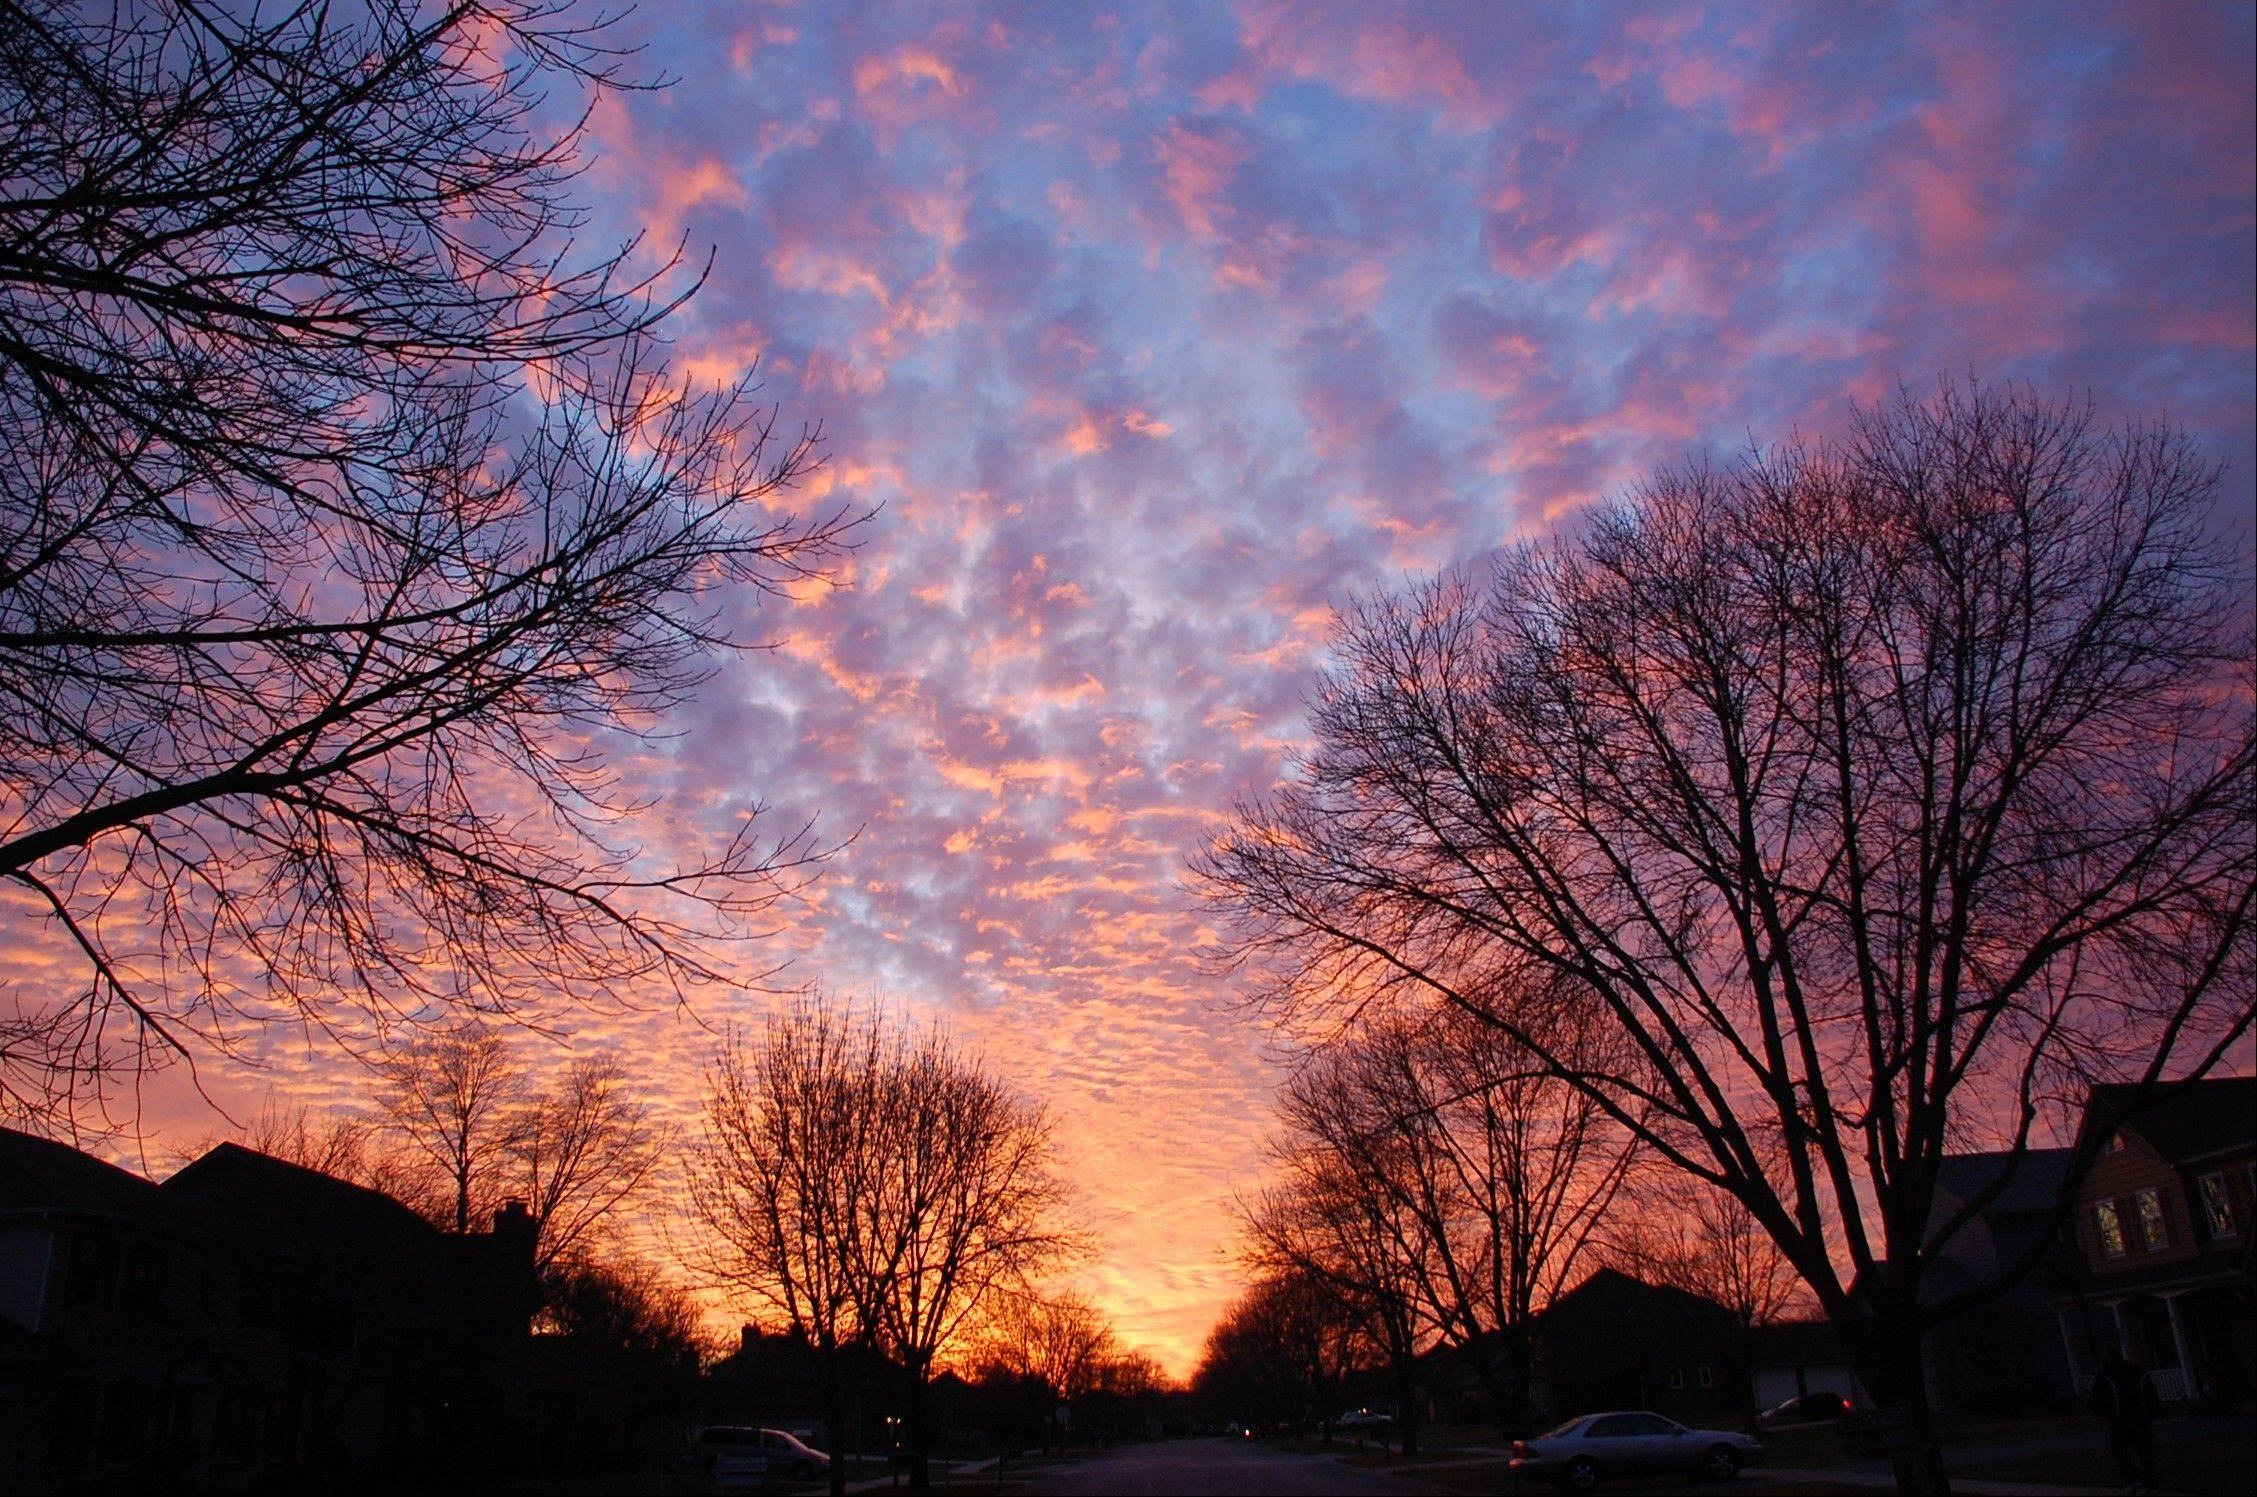 Did you happen to look out your window at 4:50 p.m. Jan. 6 and notice this fabulous sunset?